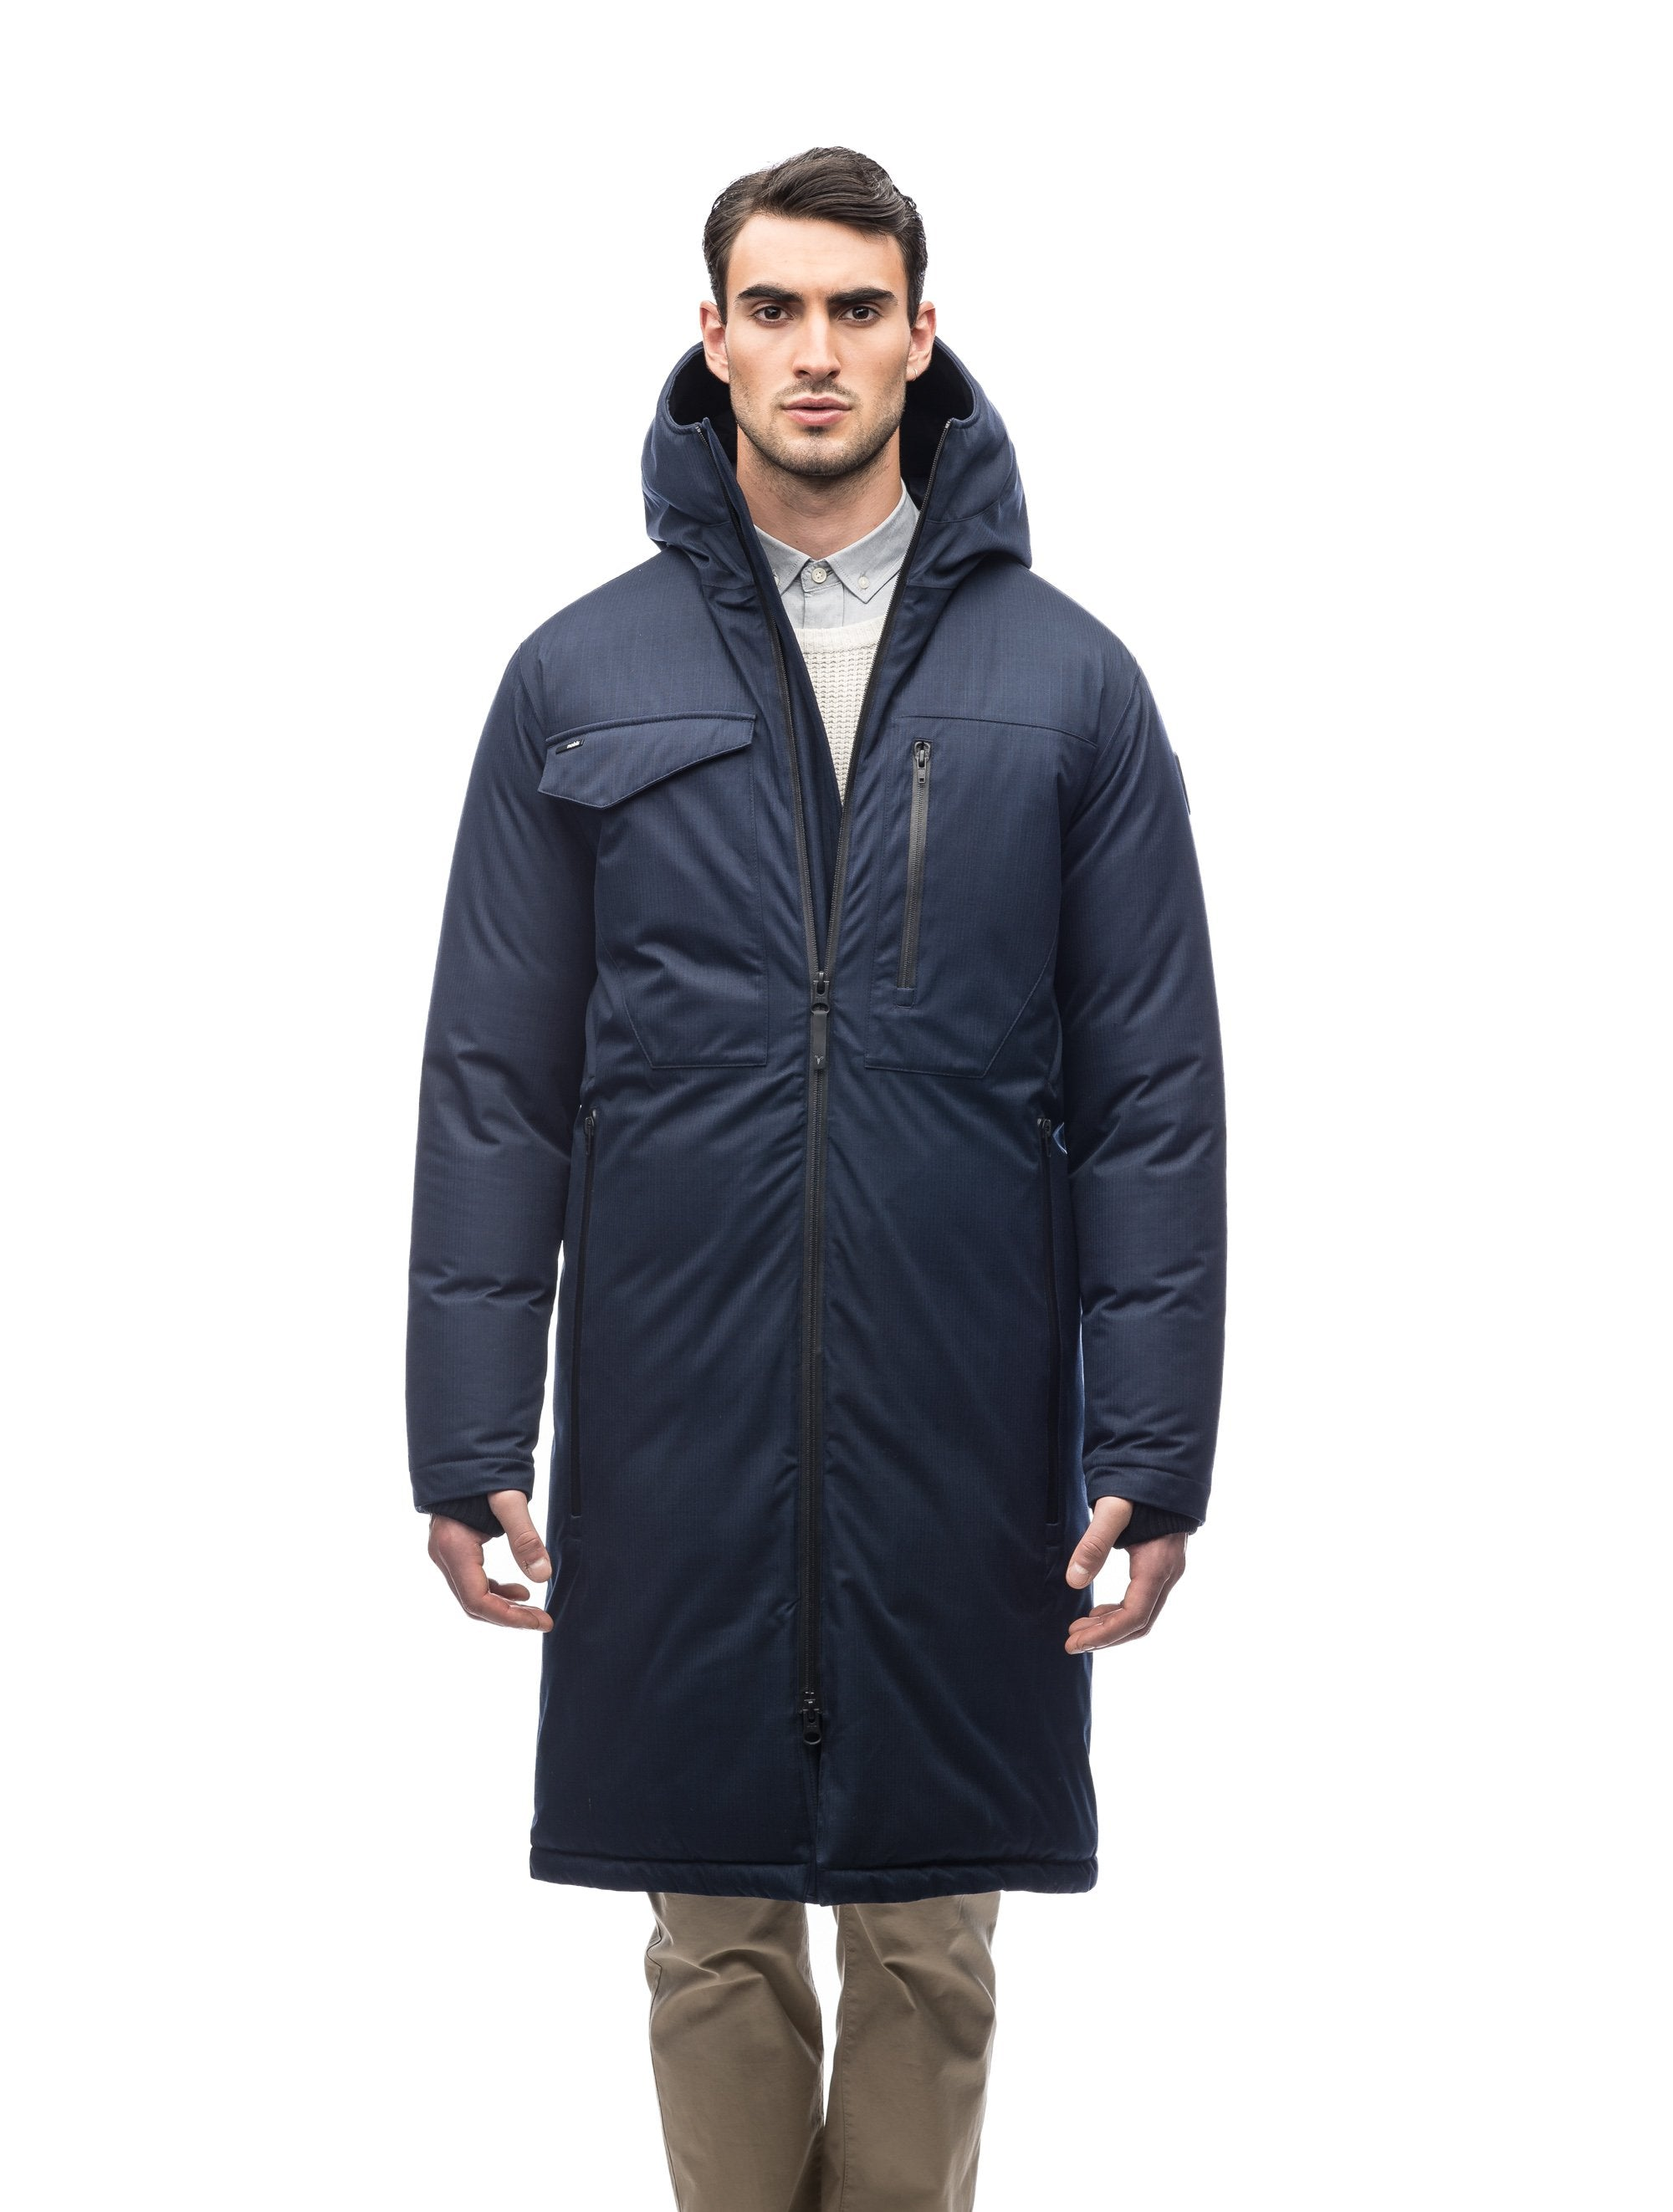 Long men's calf length parka with down fill and exposed zipper that features spacious pockets and zippered vents in Navy | color